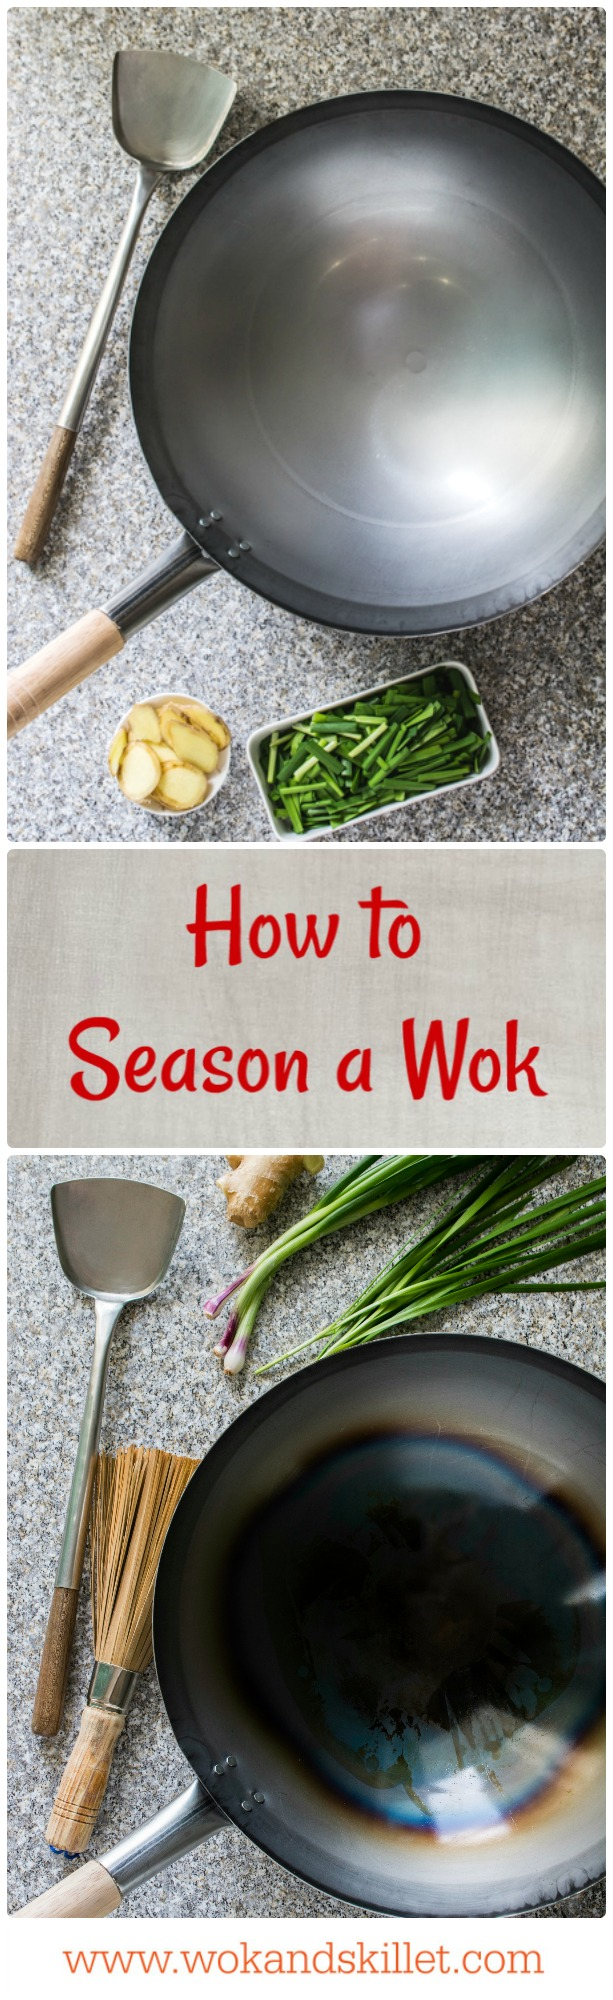 How to Season a New Wok. An easy step-by-step guide.